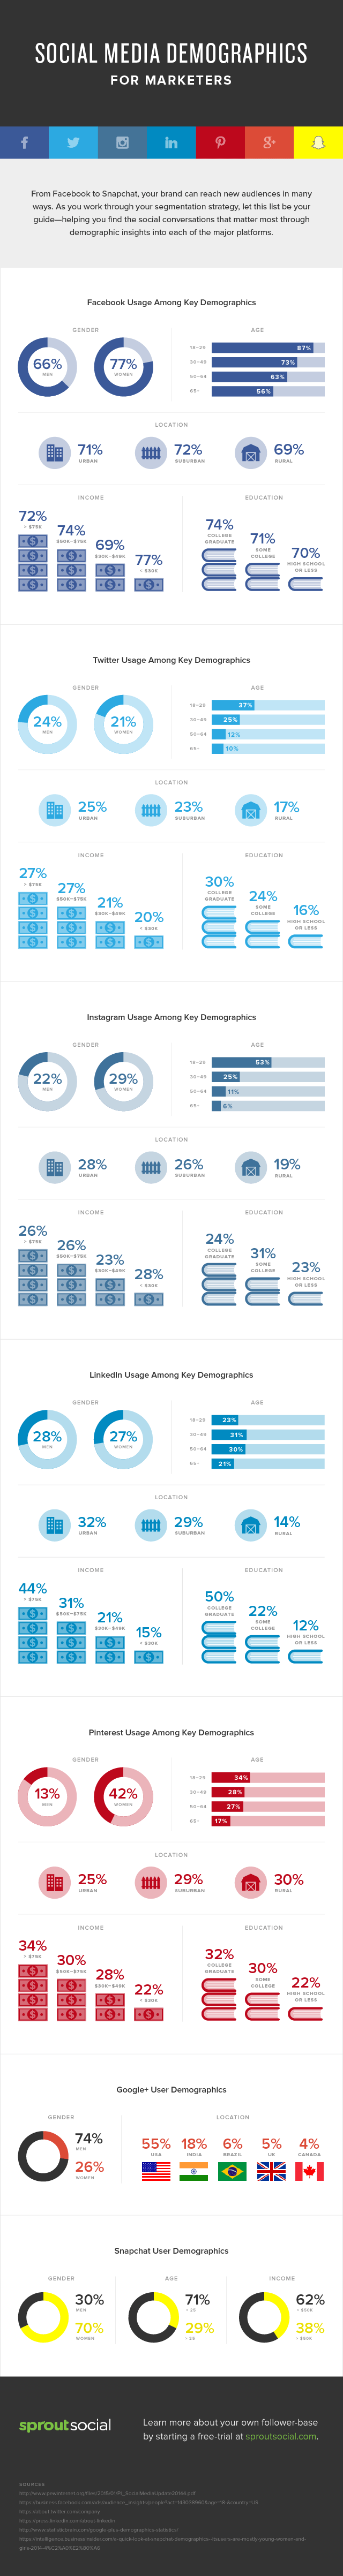 Demografía de las Redes Sociales para marketeros